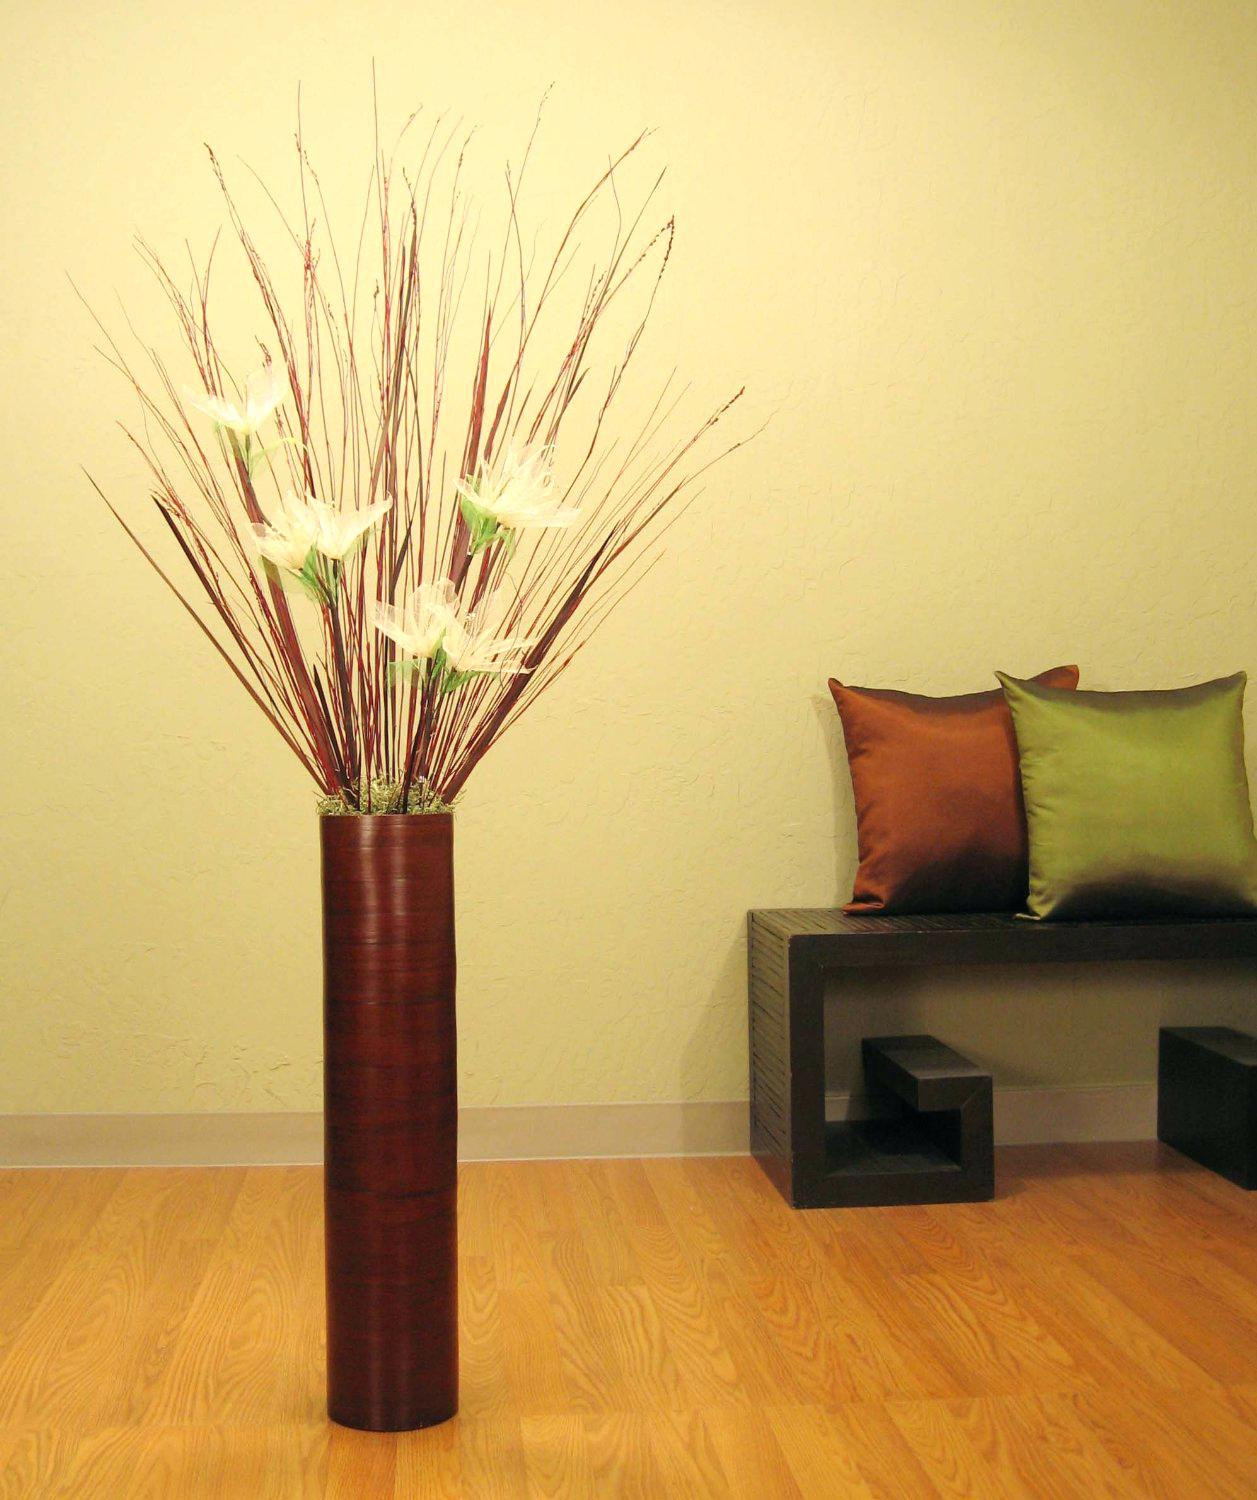 26 Wonderful Decorative Sticks For Tall Vases Decorative